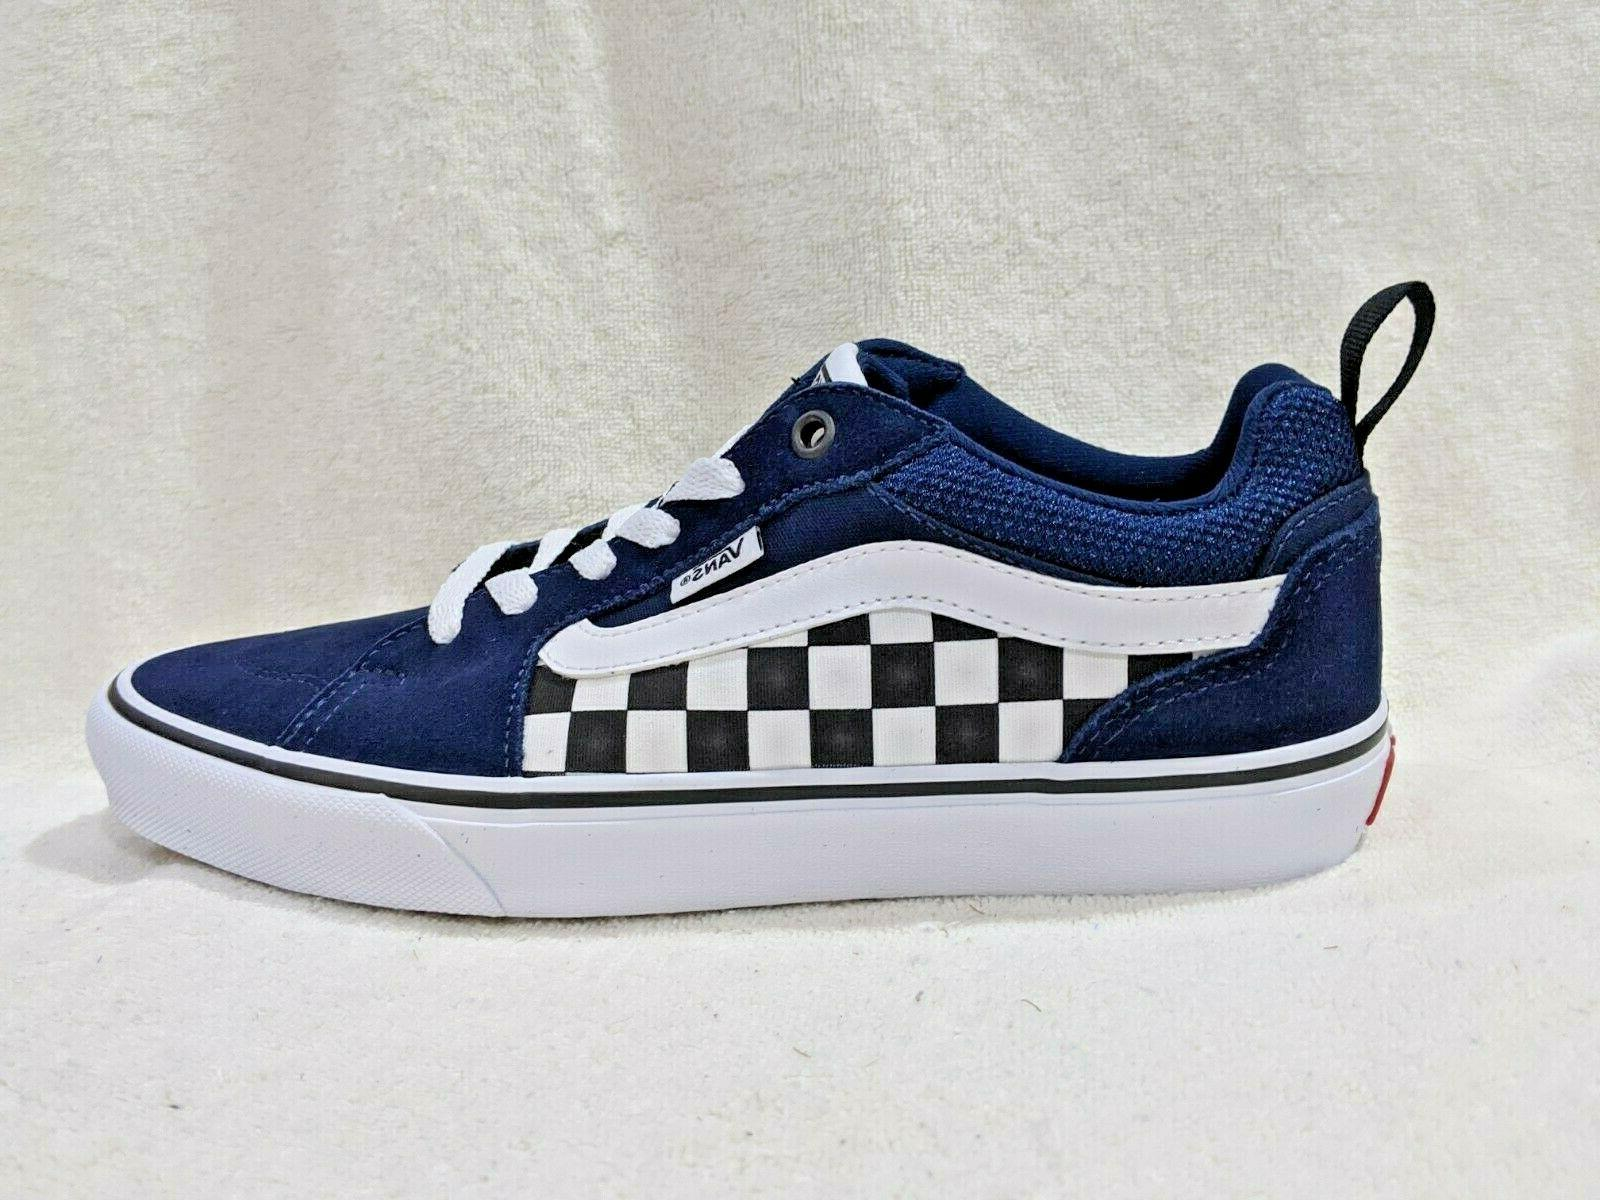 Vans Men's Filmore Dress Blue/White Sizes